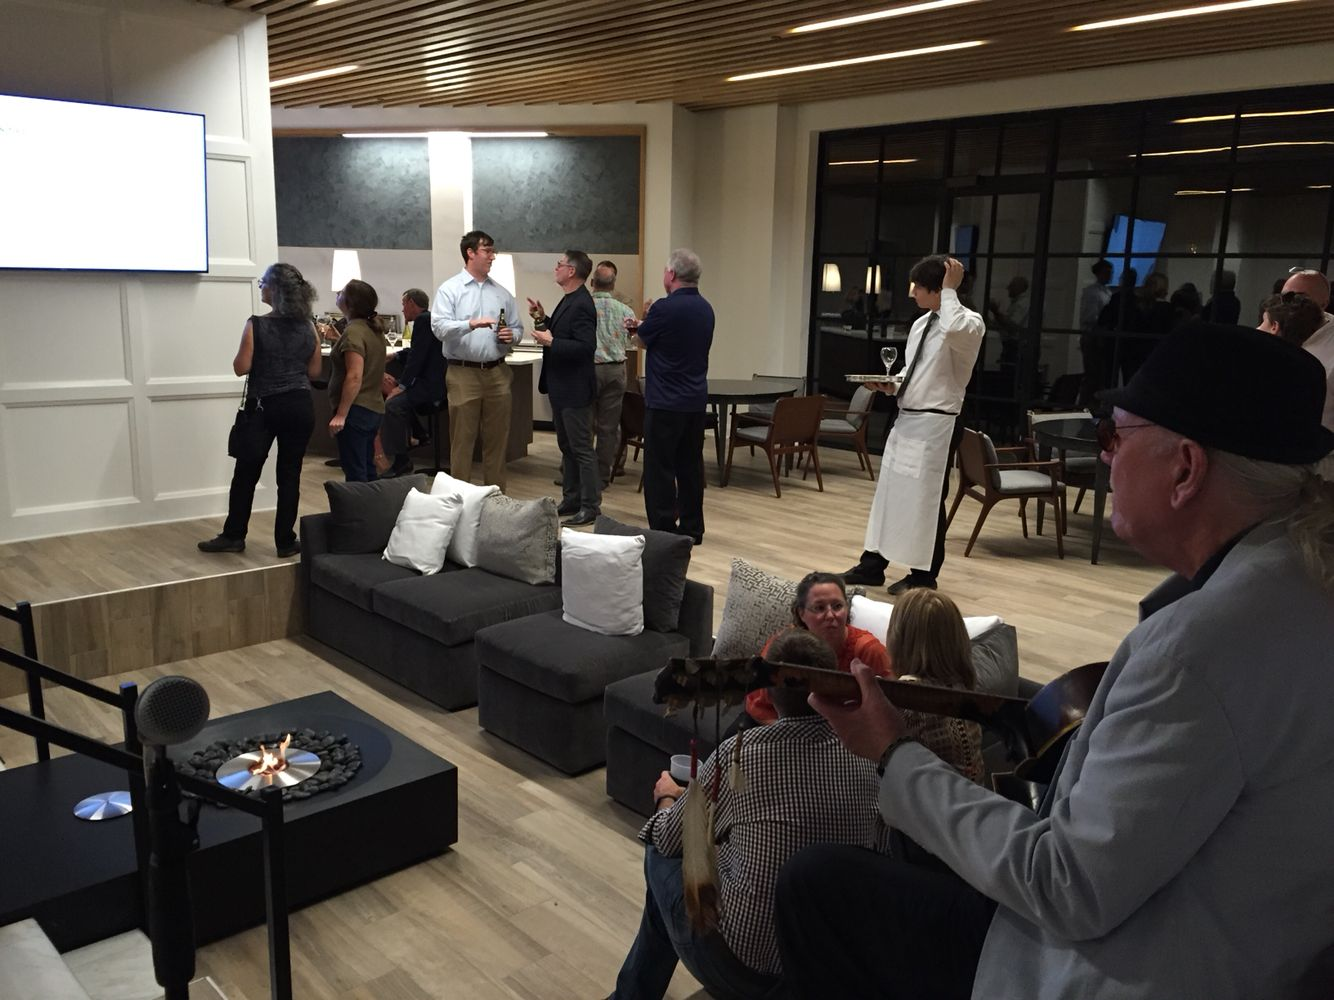 Open house at the Artesian Residences, Memphis, TN. 10/15/2015